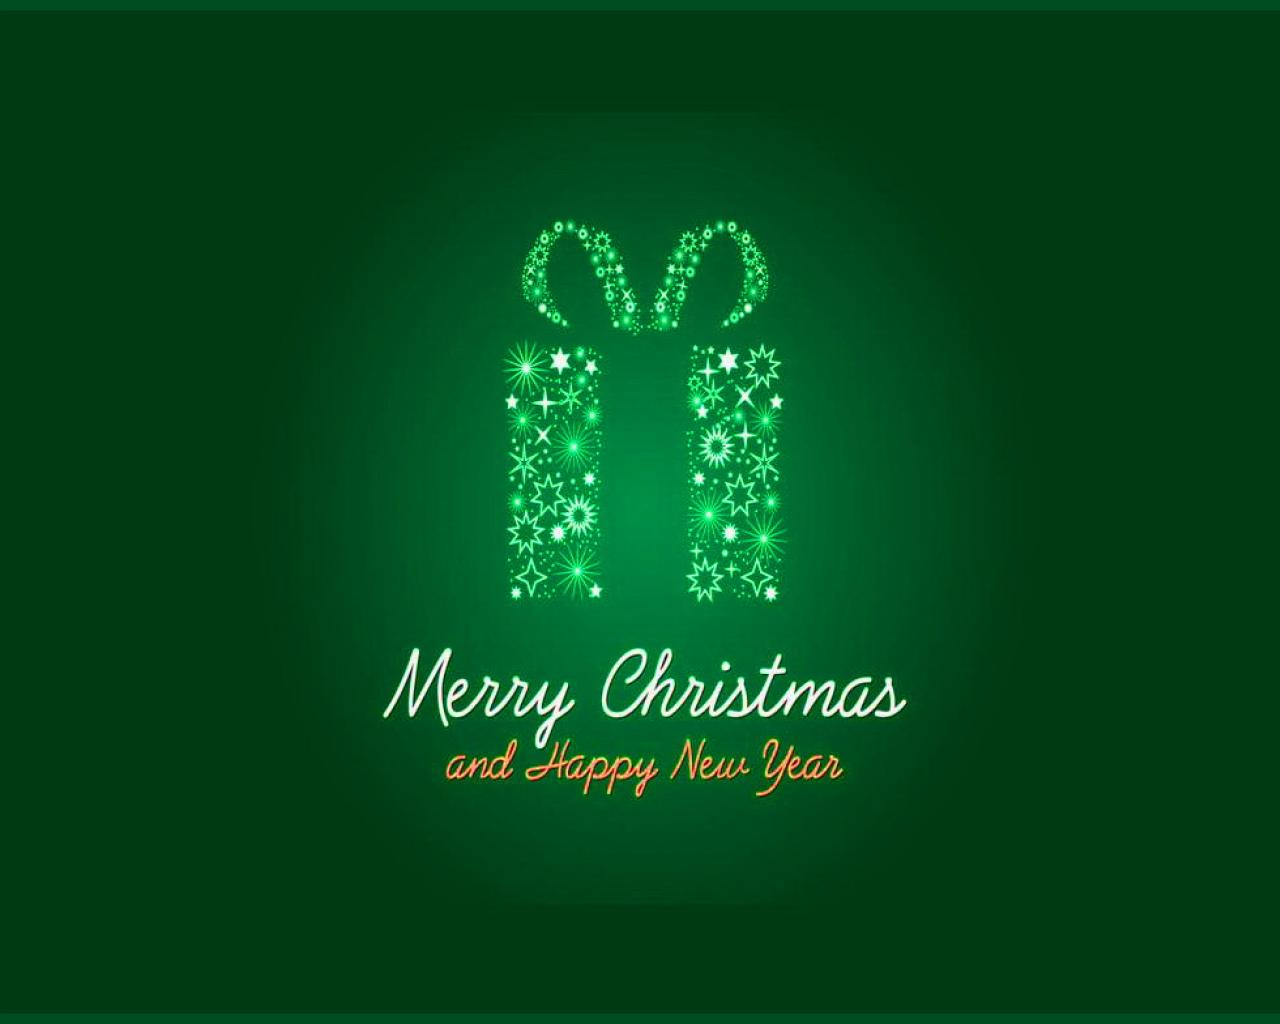 Merry Christmas And Happy New Year 2015 Wallpaper12